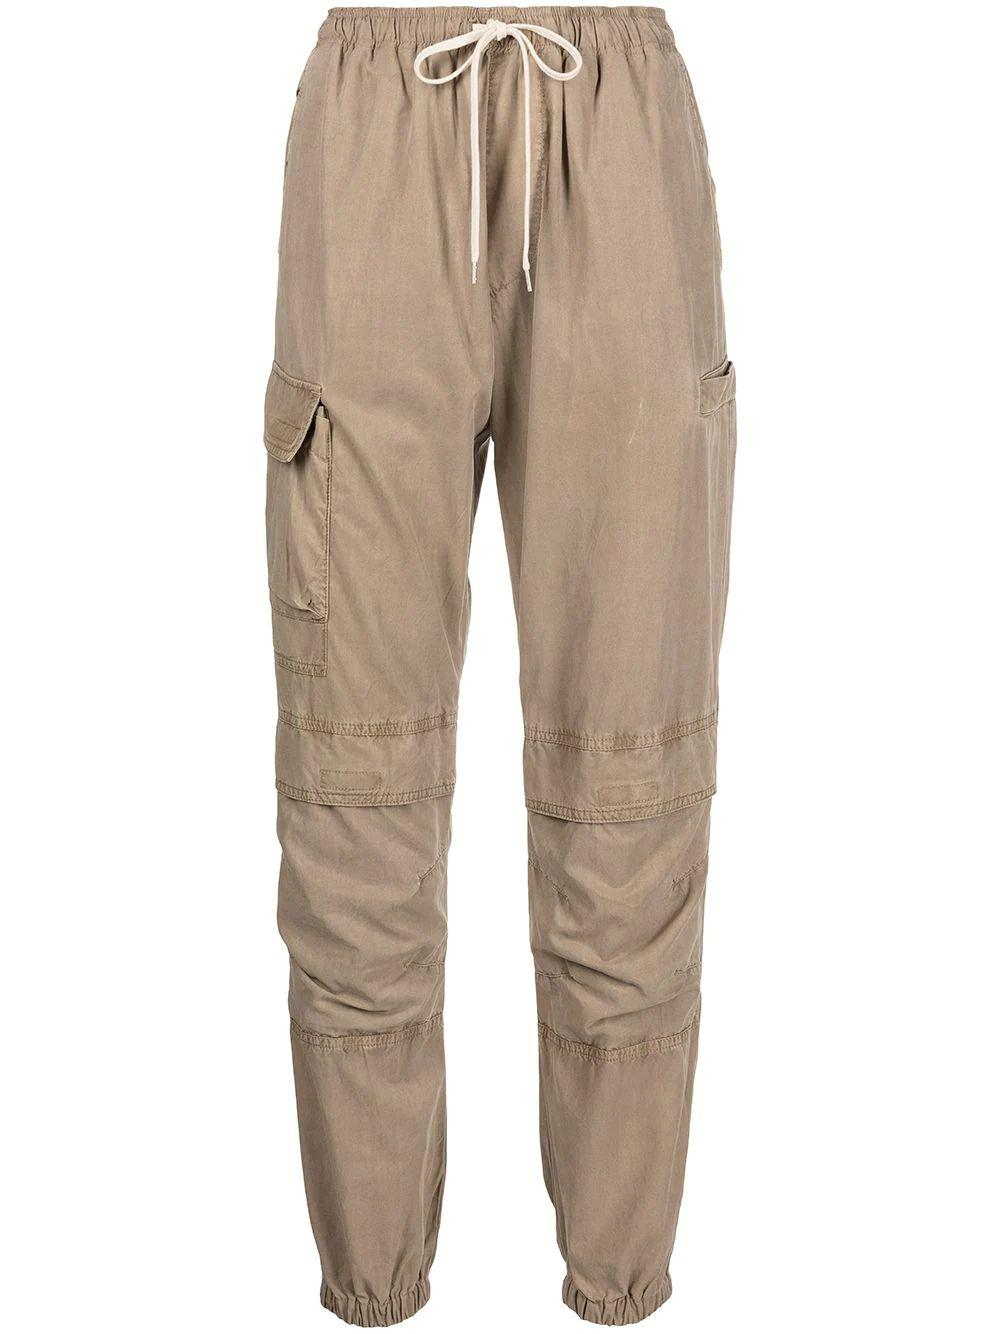 Cotton Himalayan Pants